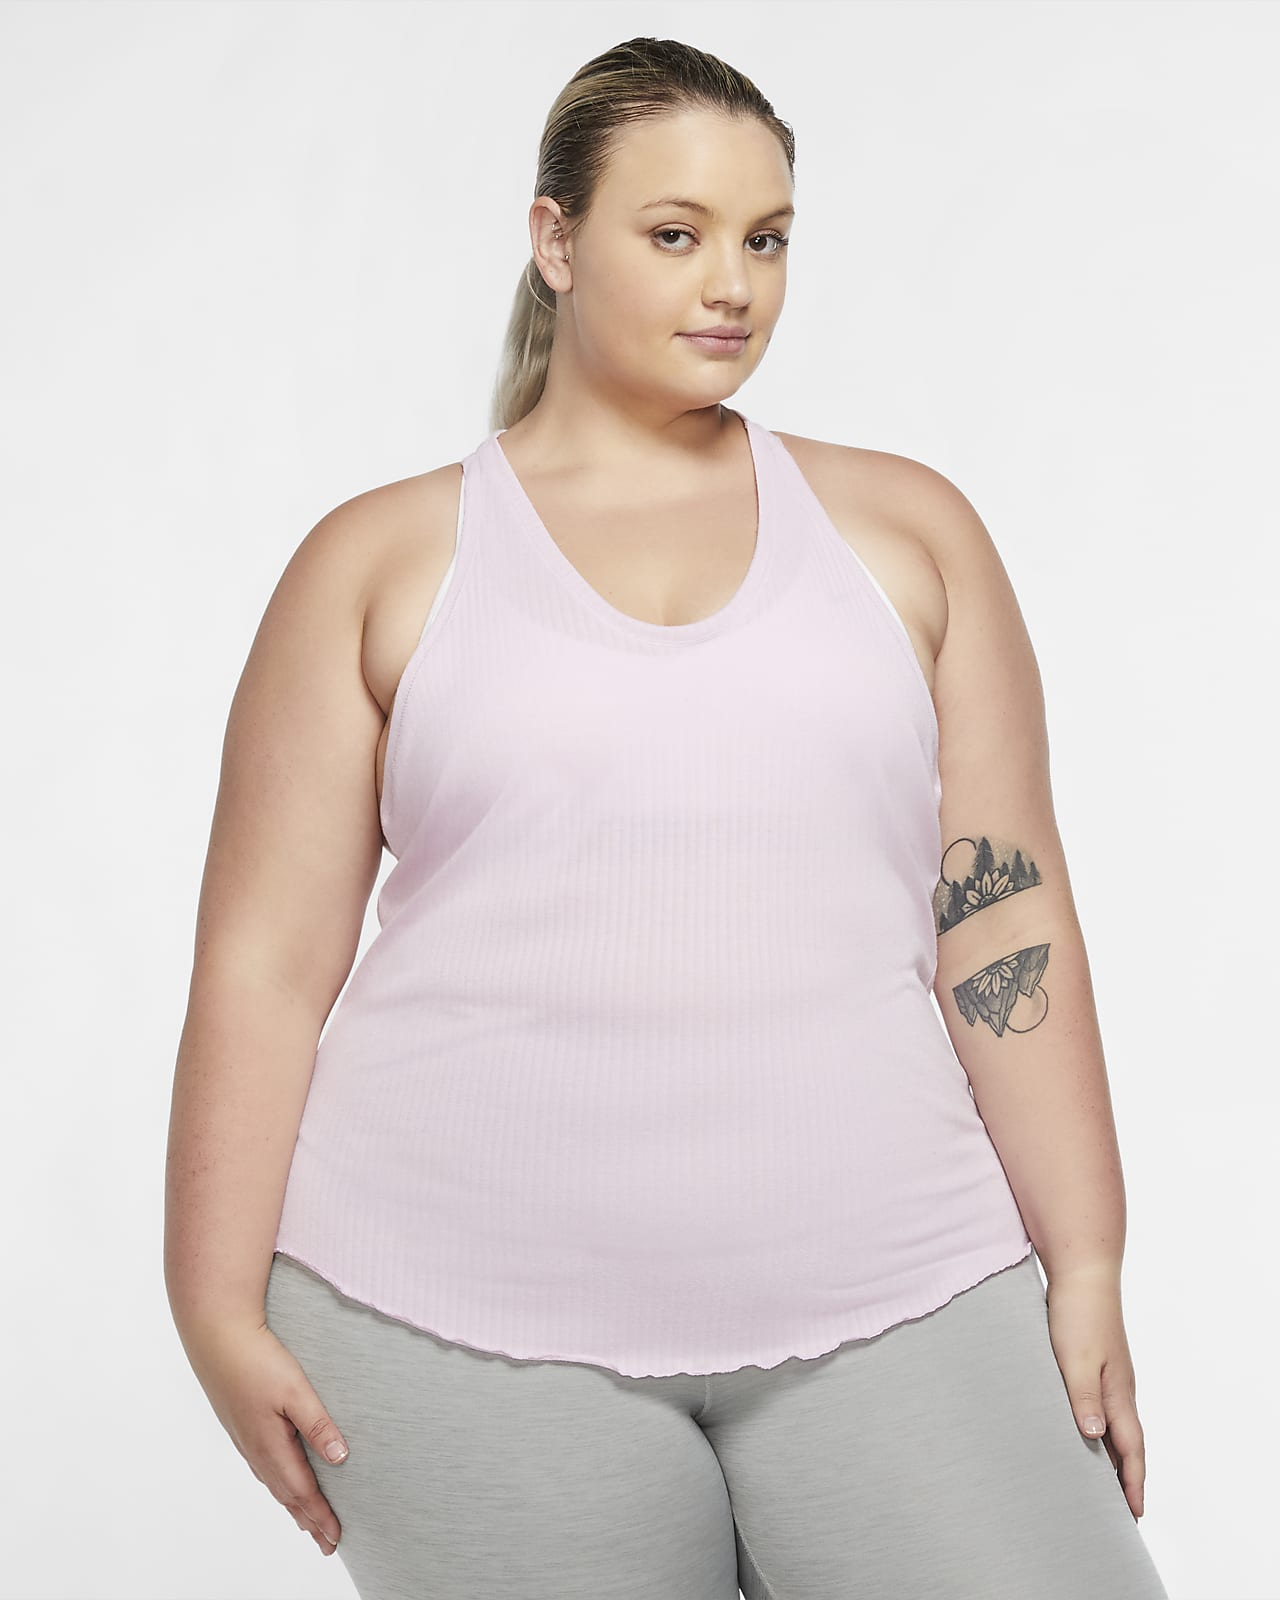 Nike Yoga Women's Tank (Plus Size)